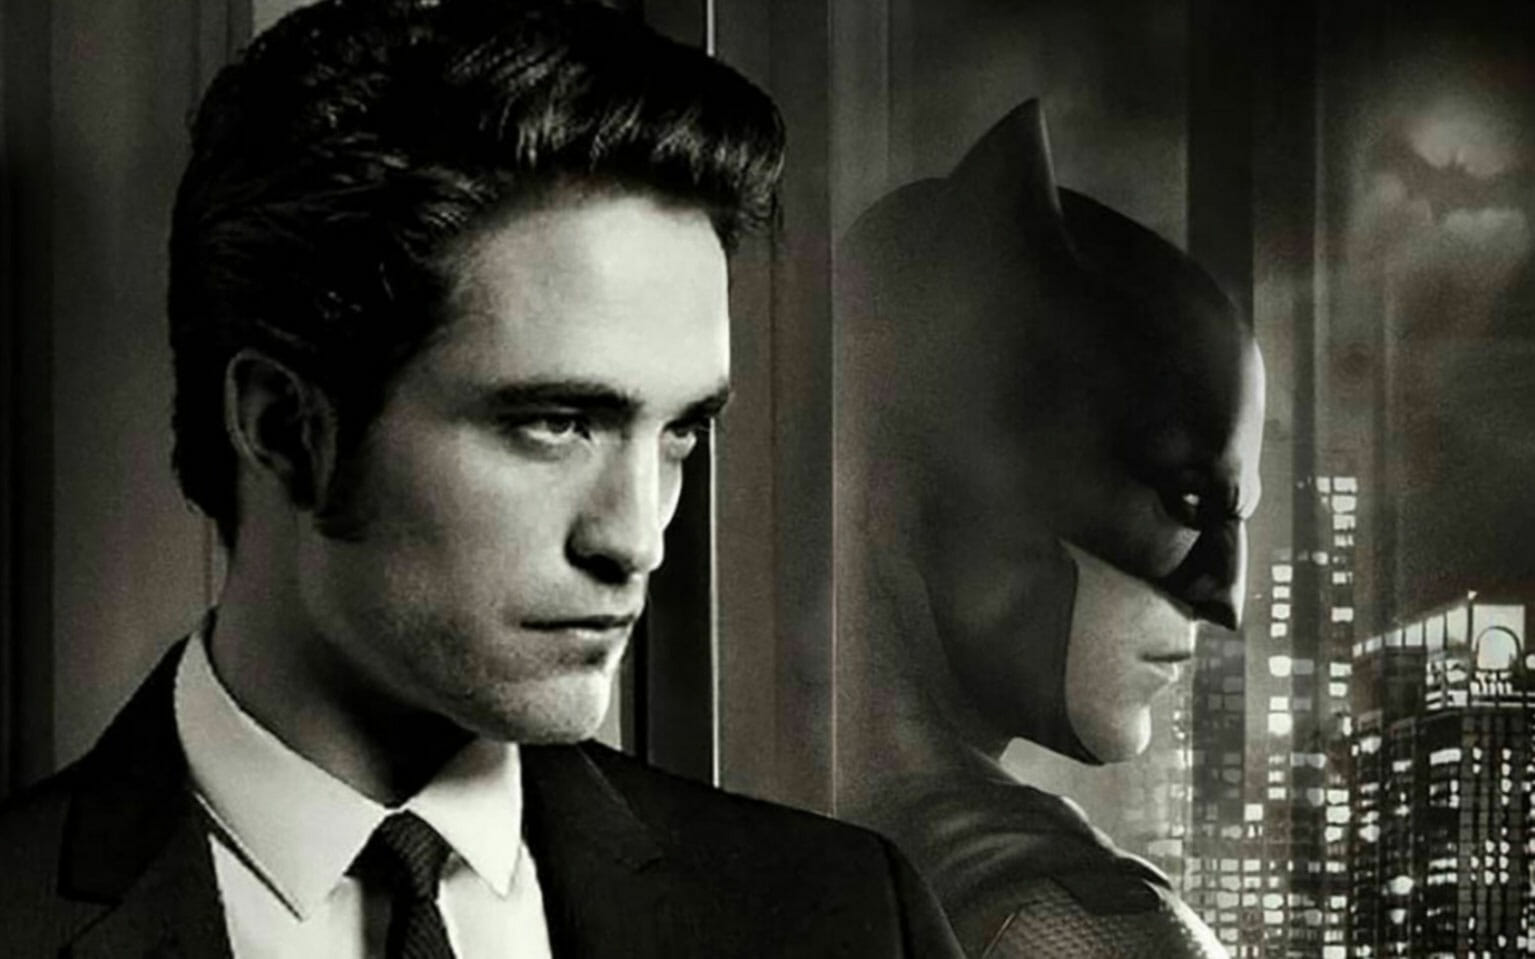 The Batman revela primer vistazo a Robert Pattinson con traje del superhéroe